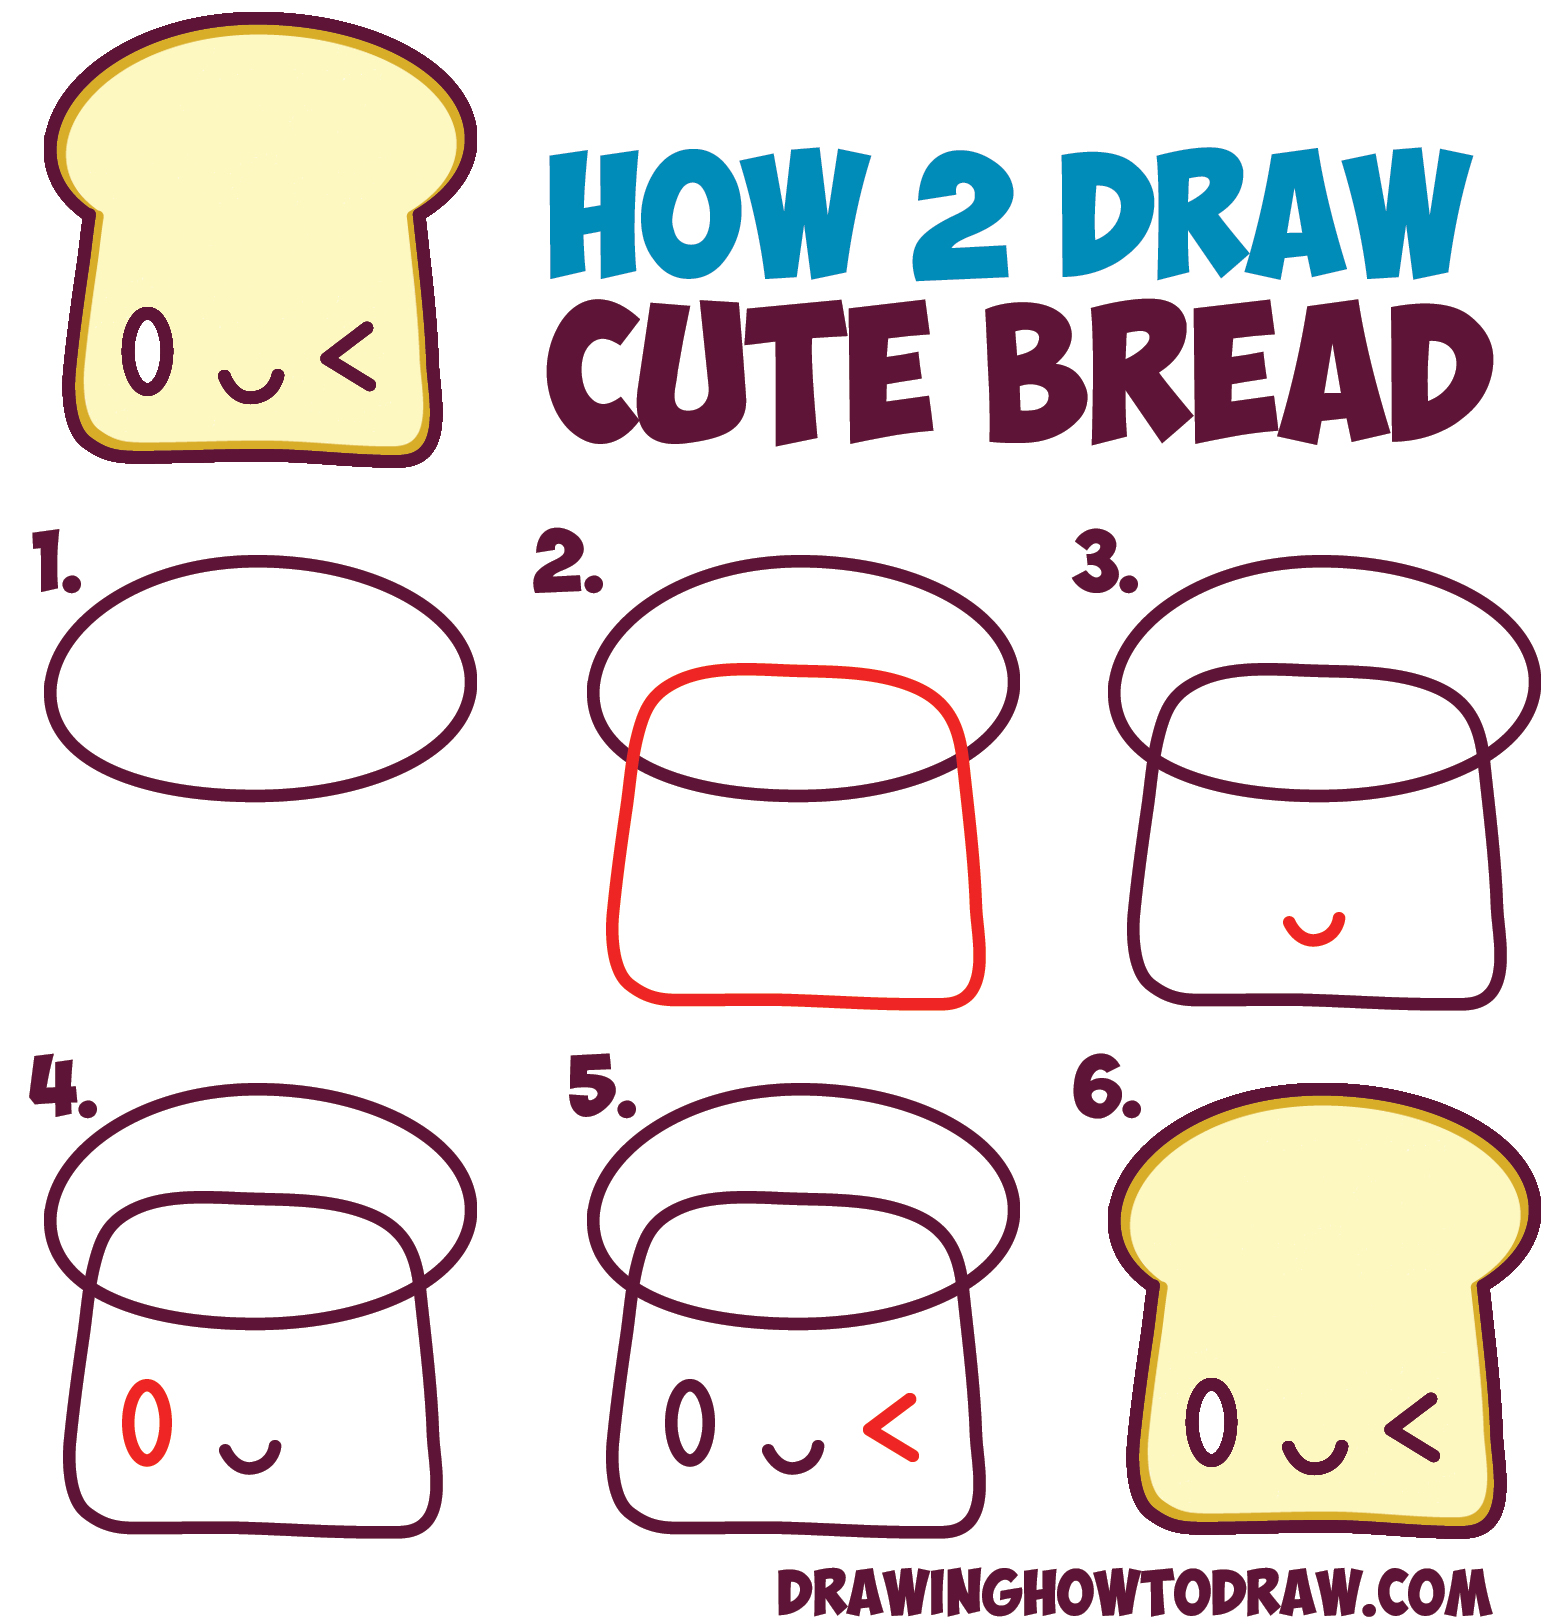 How To Draw Cute Kawaii Bread Slice With Face On It Easy Step By